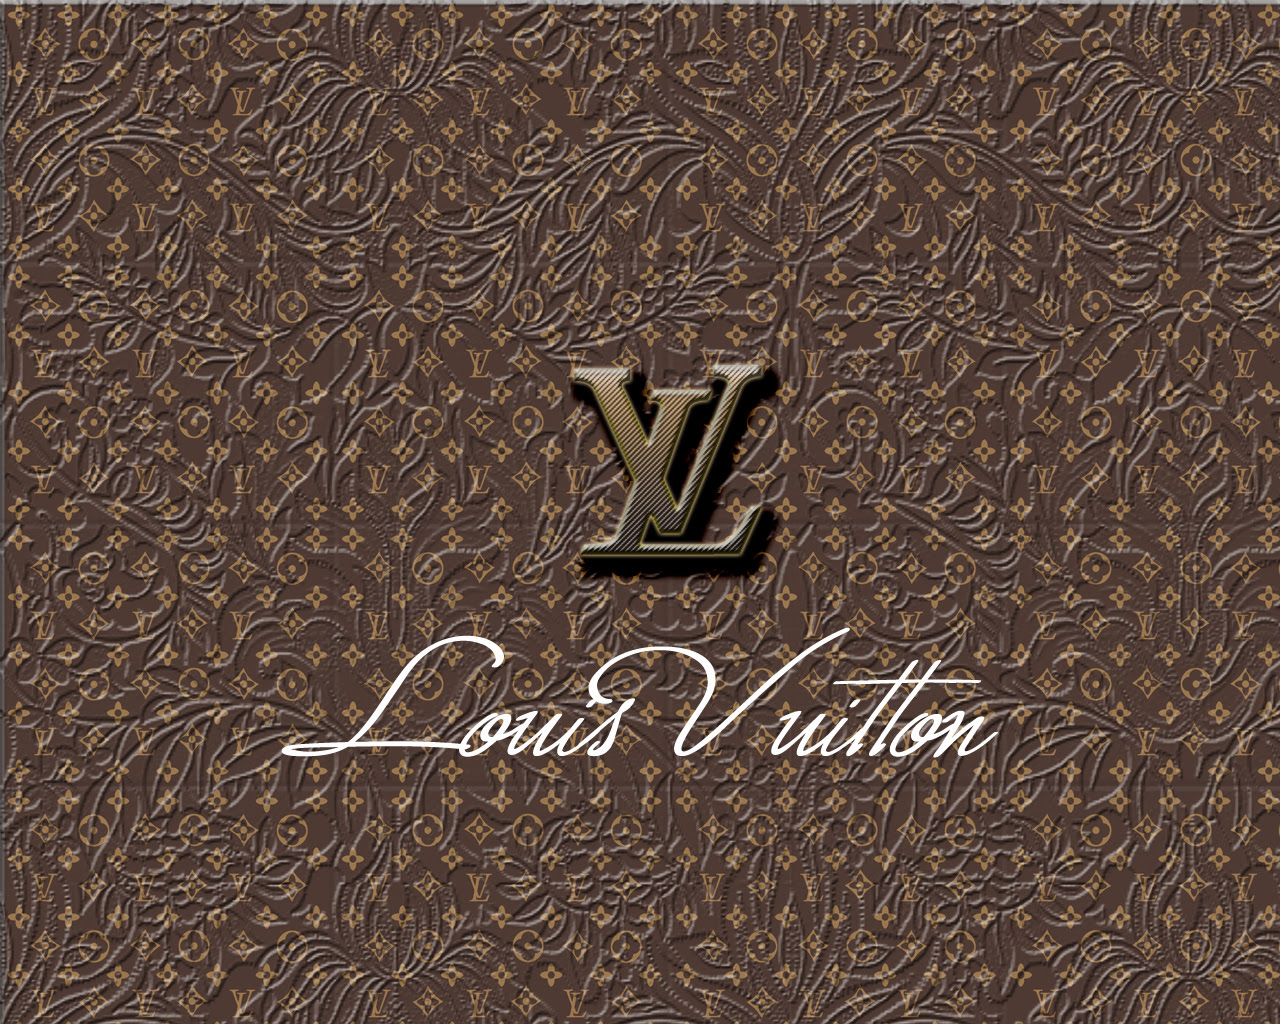 Louis Vuitton iPhone Wallpapers (60 Wallpapers) - HD ...